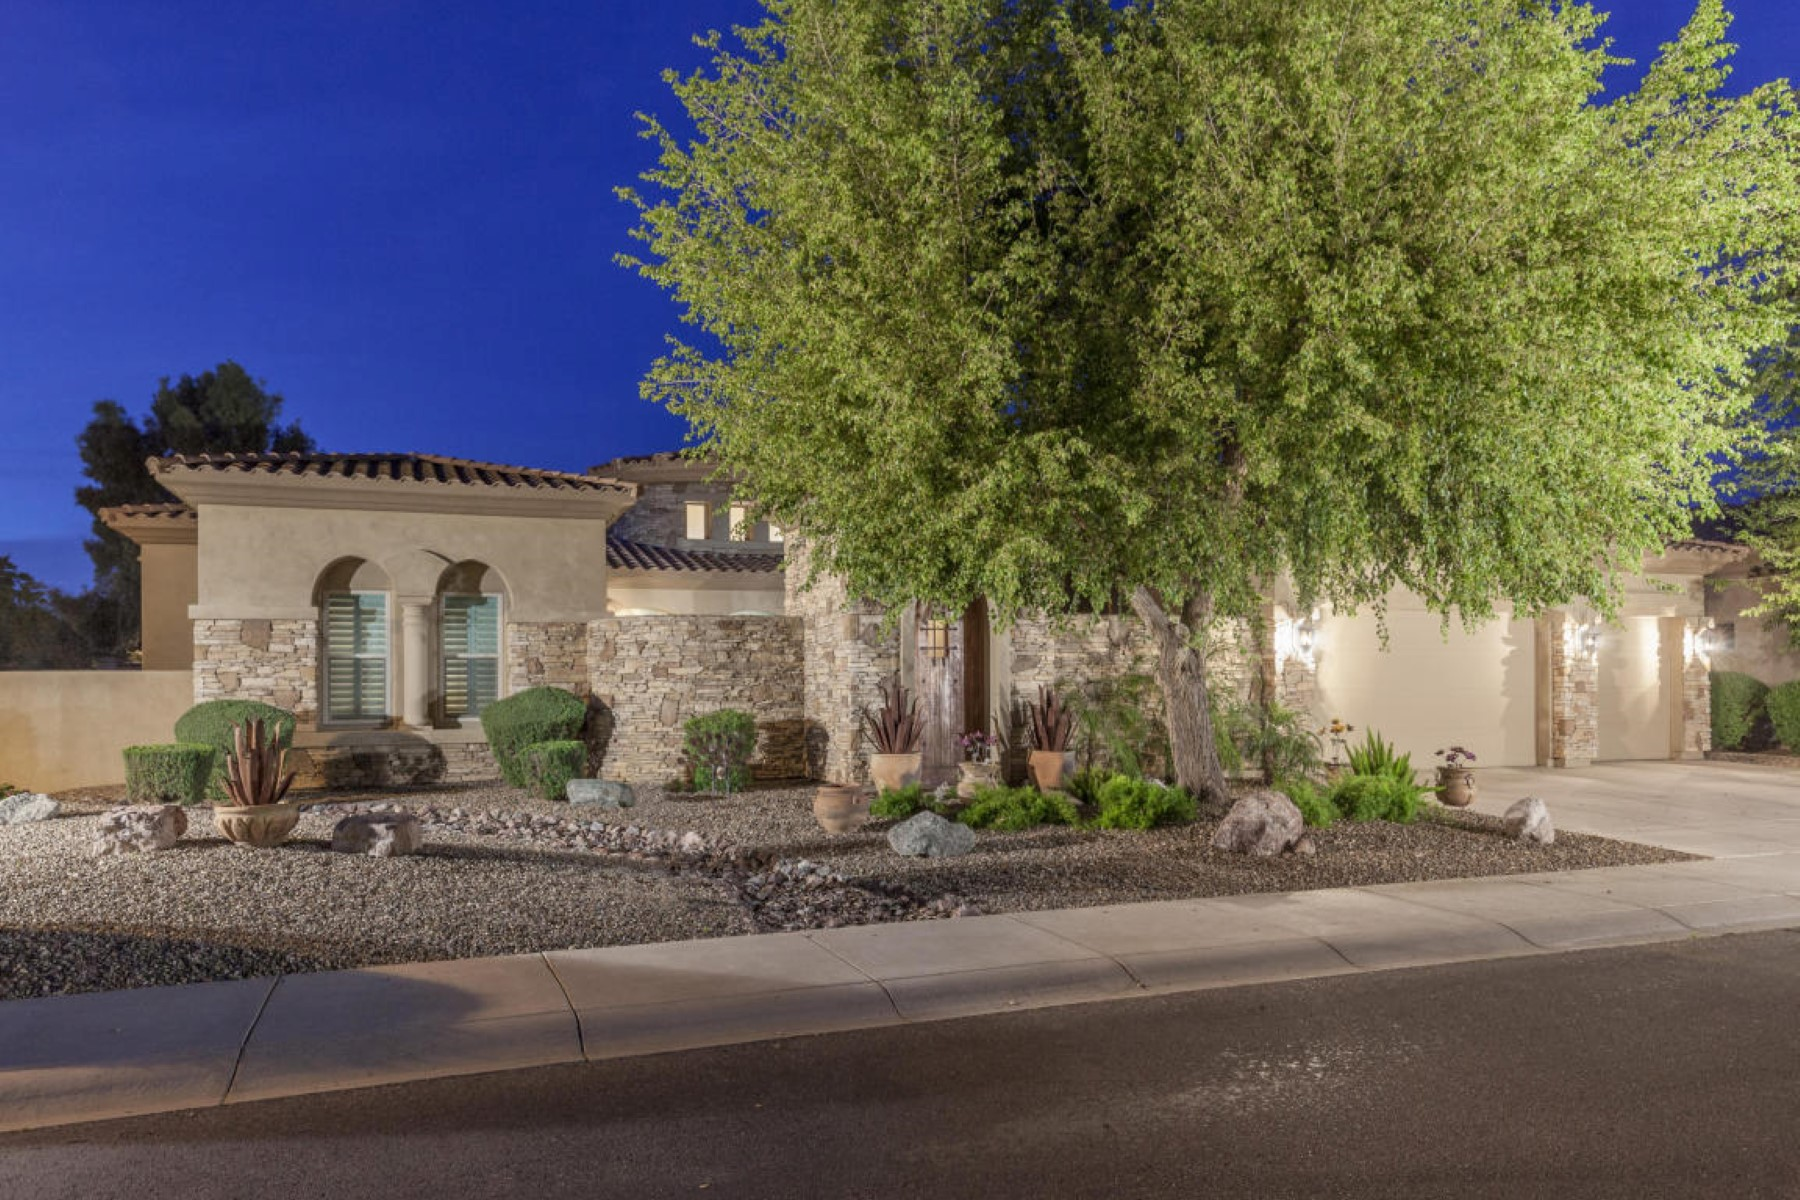 rentals property at Magnificent Home In Paso Fino Estates In The Cactus Corridor